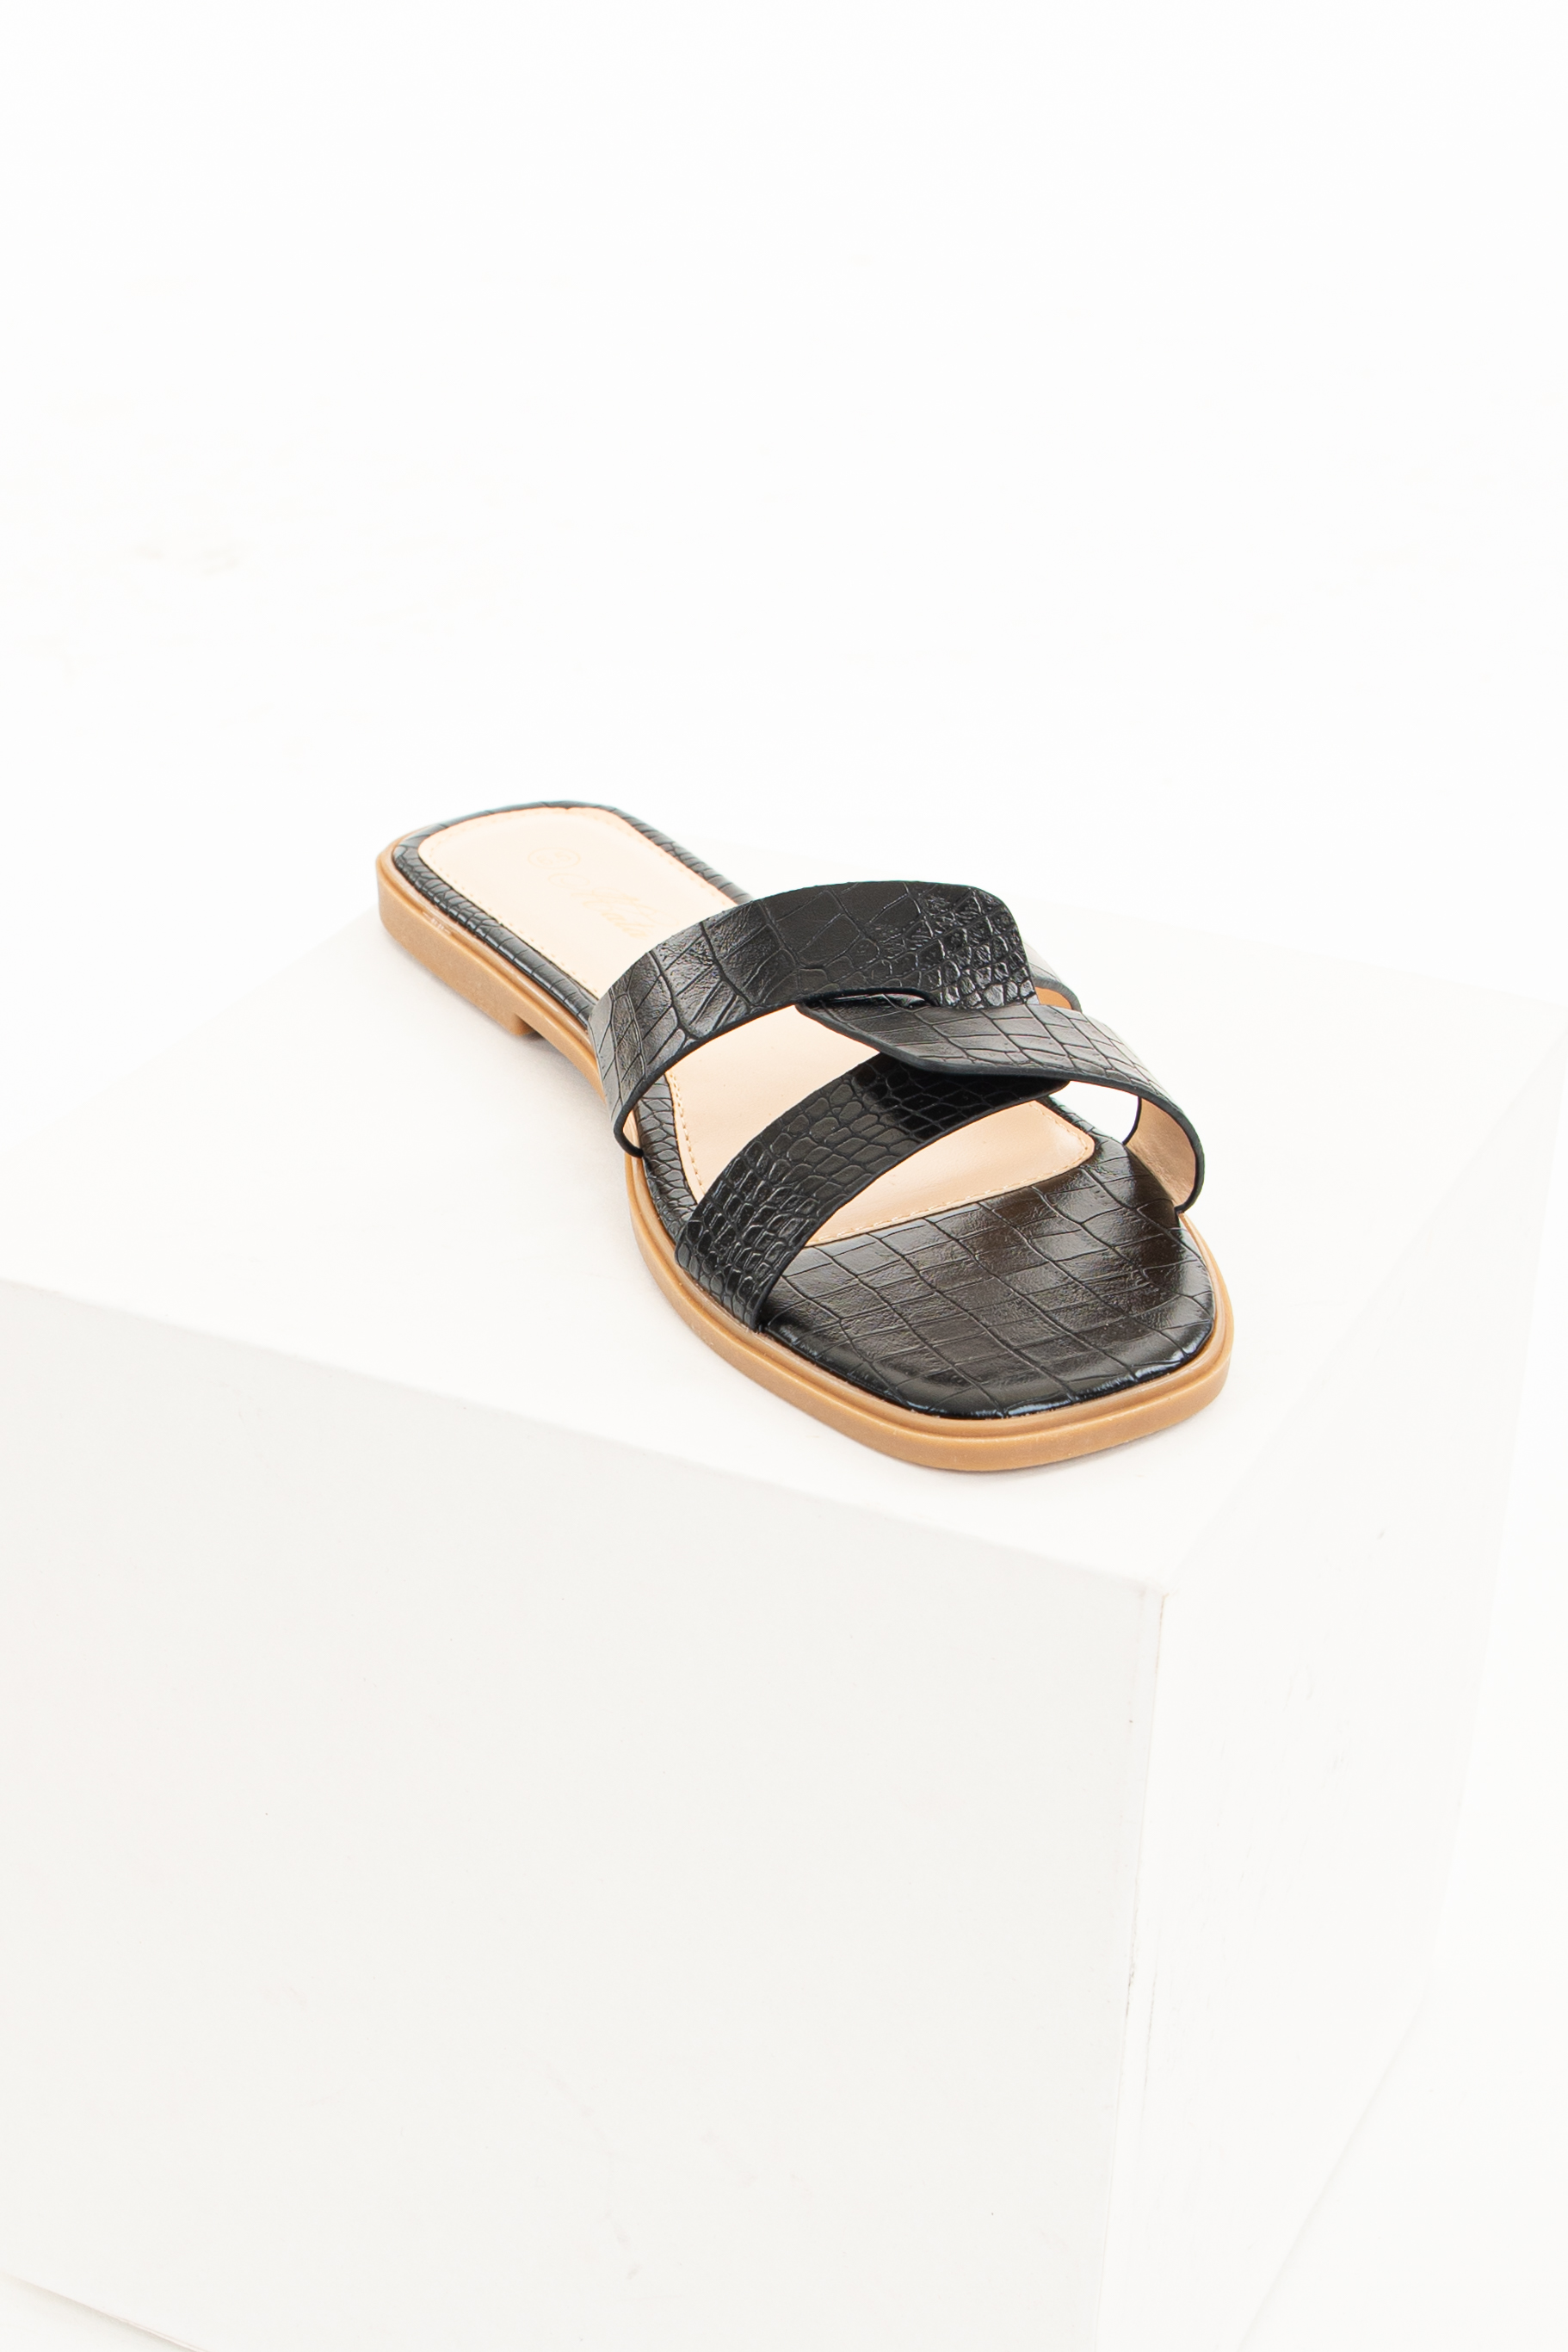 Black Slip On Sandals with Reptile Texture and Open Toe